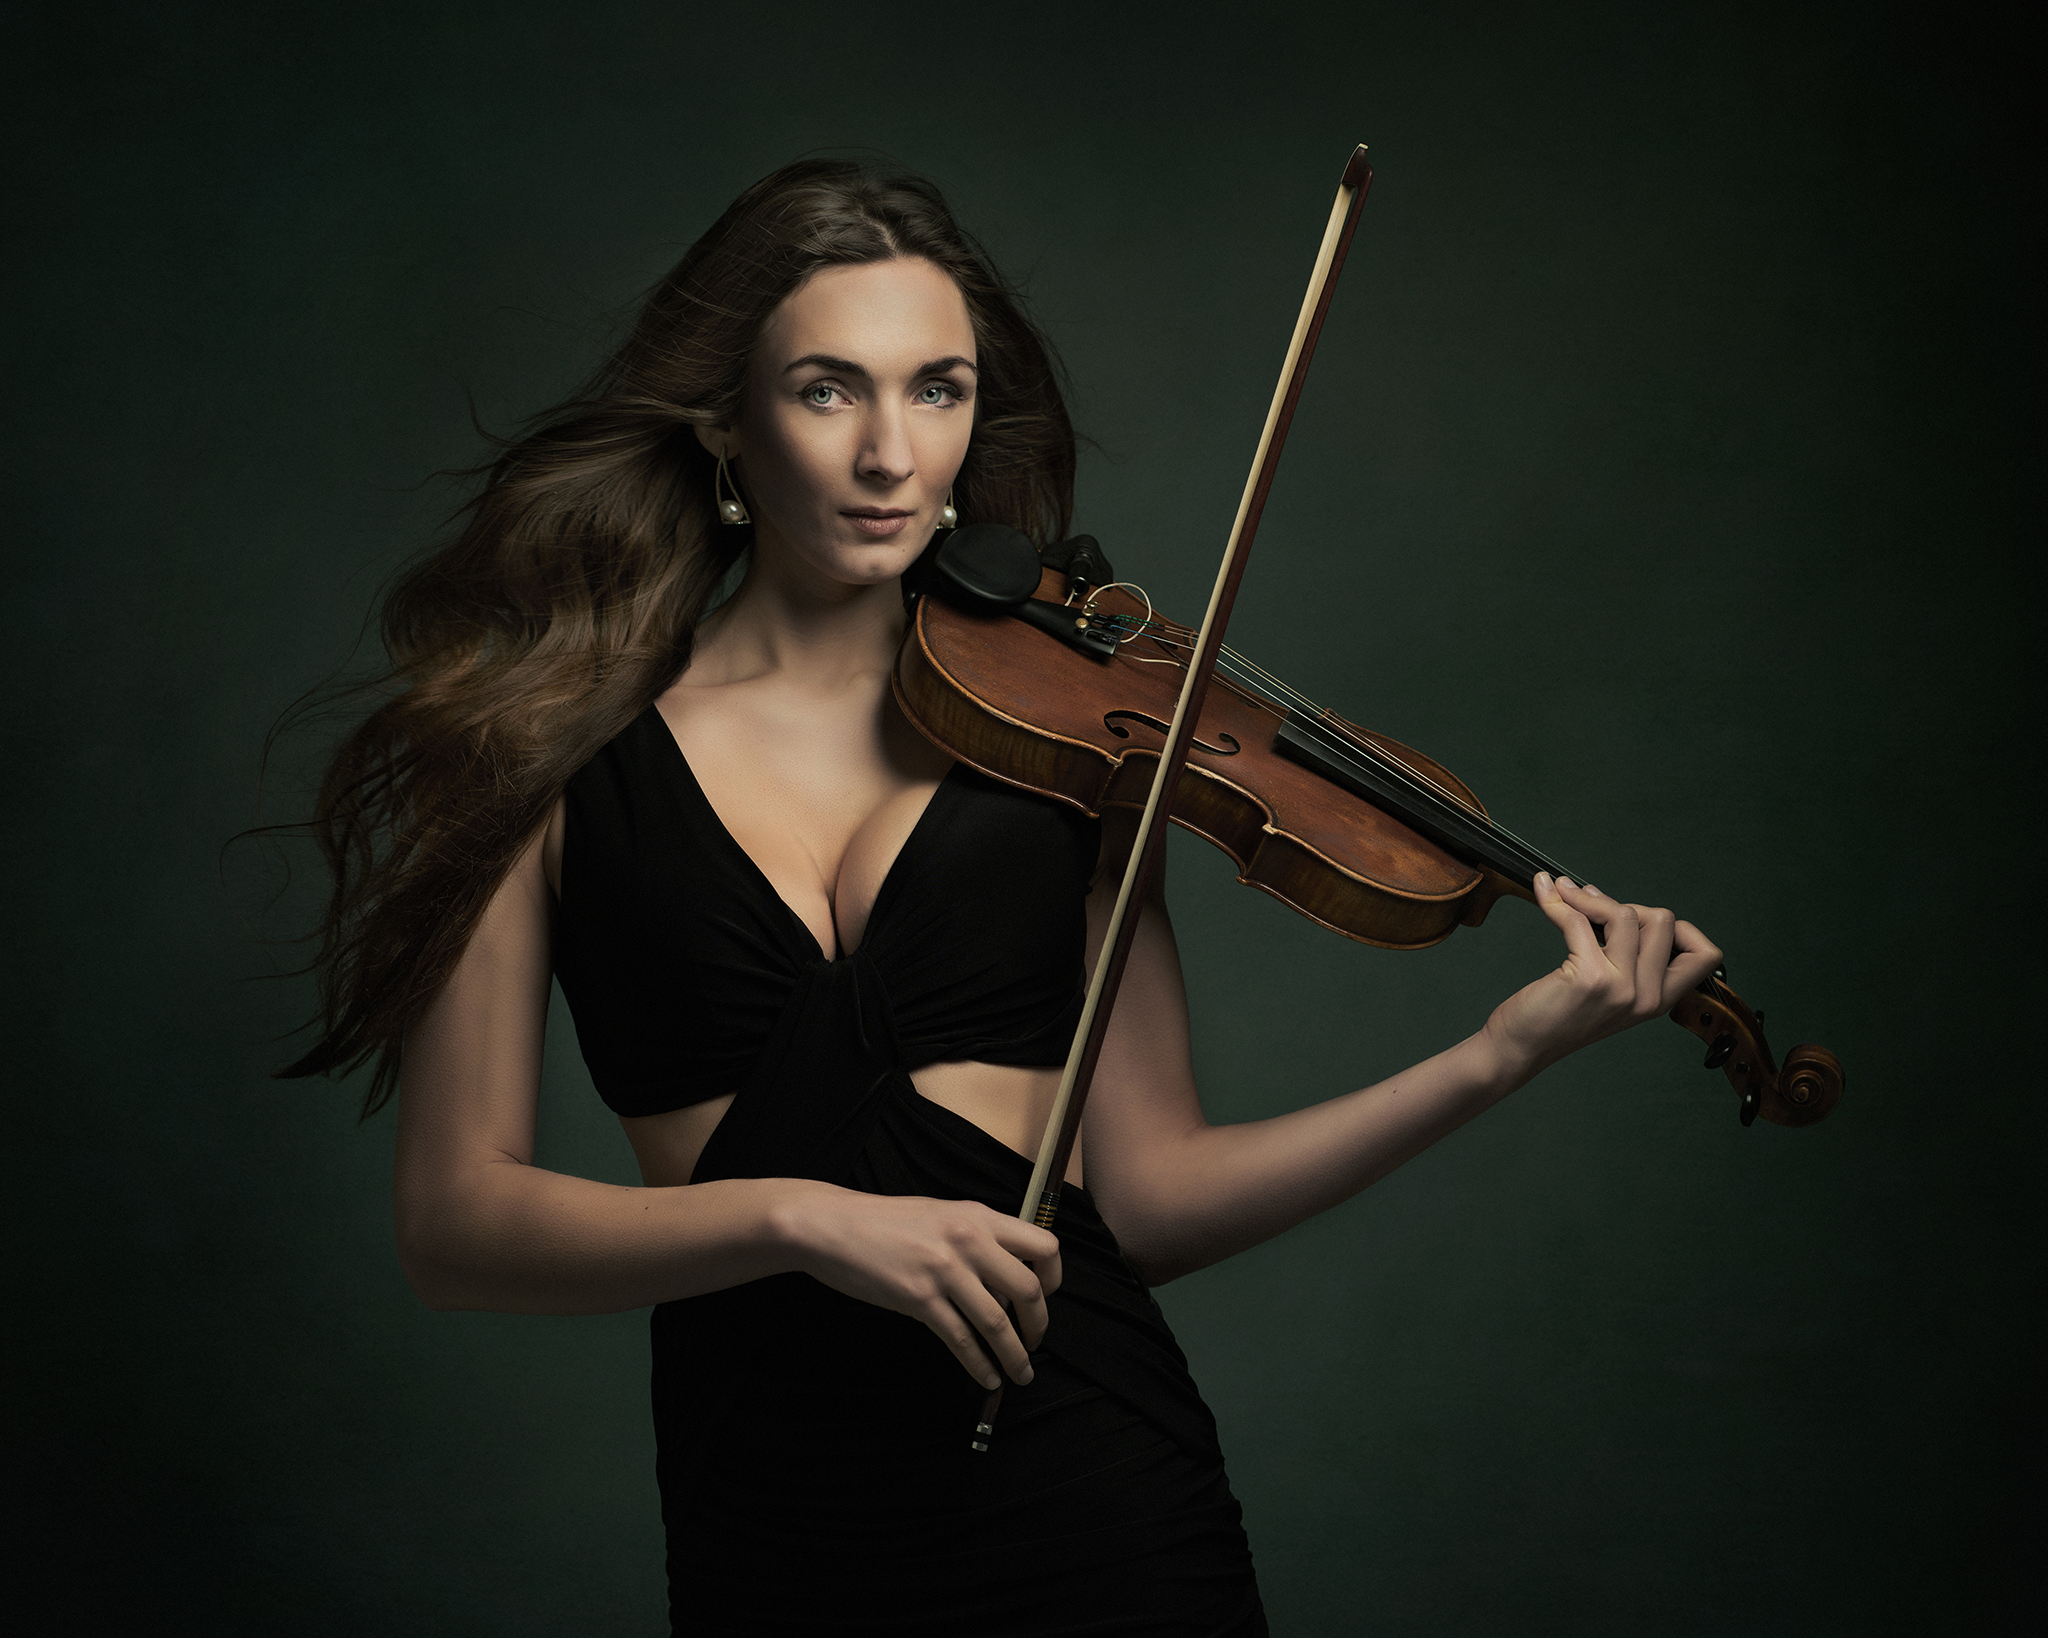 Fashion shoot model with violin by Boudoir Photographer Lancashire